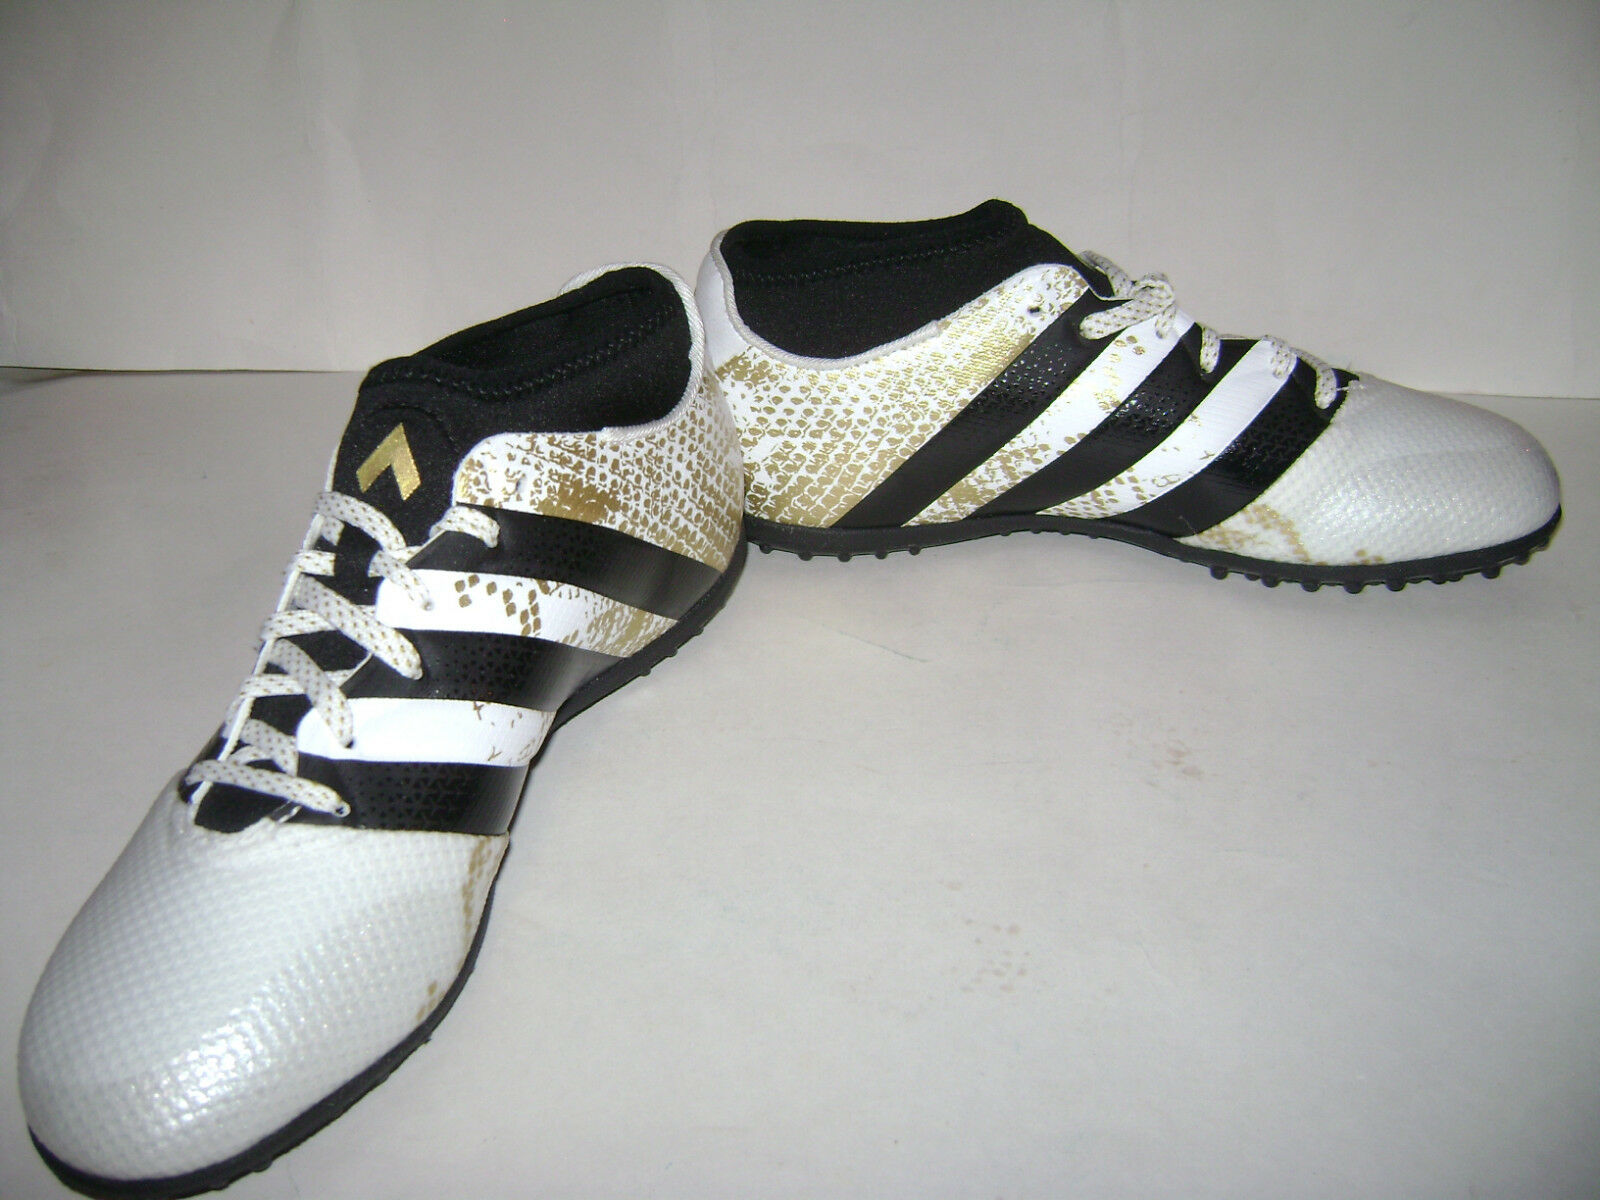 615a19e9287 adidas Ace 16.3 Primemesh Indoor Soccer Shoes Size 11 White Black Gold  Aq3422 for sale online